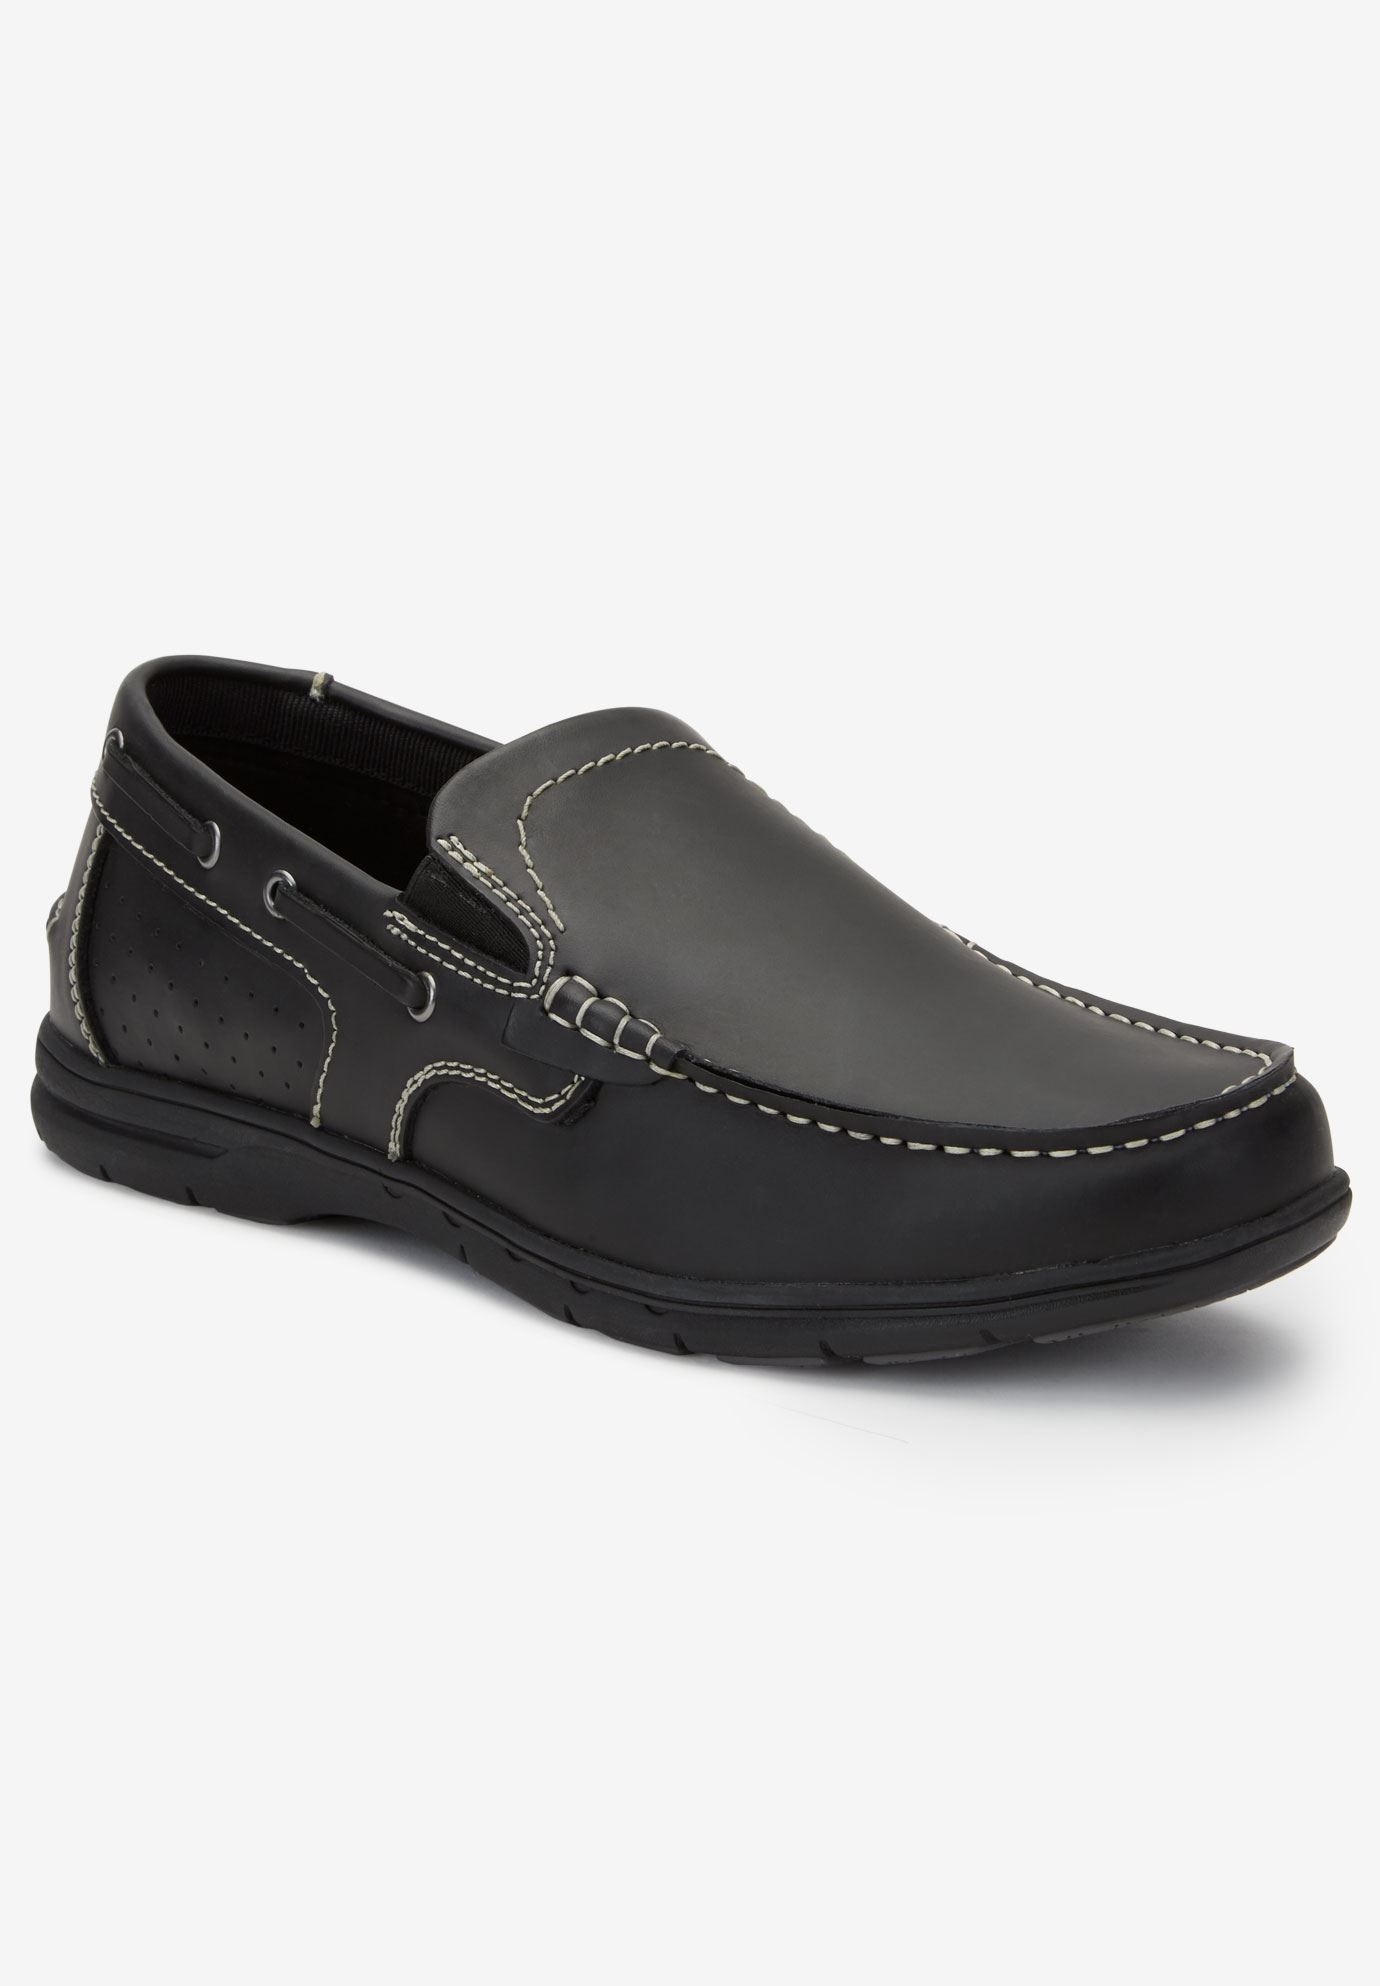 Slip-On Boat Shoes,